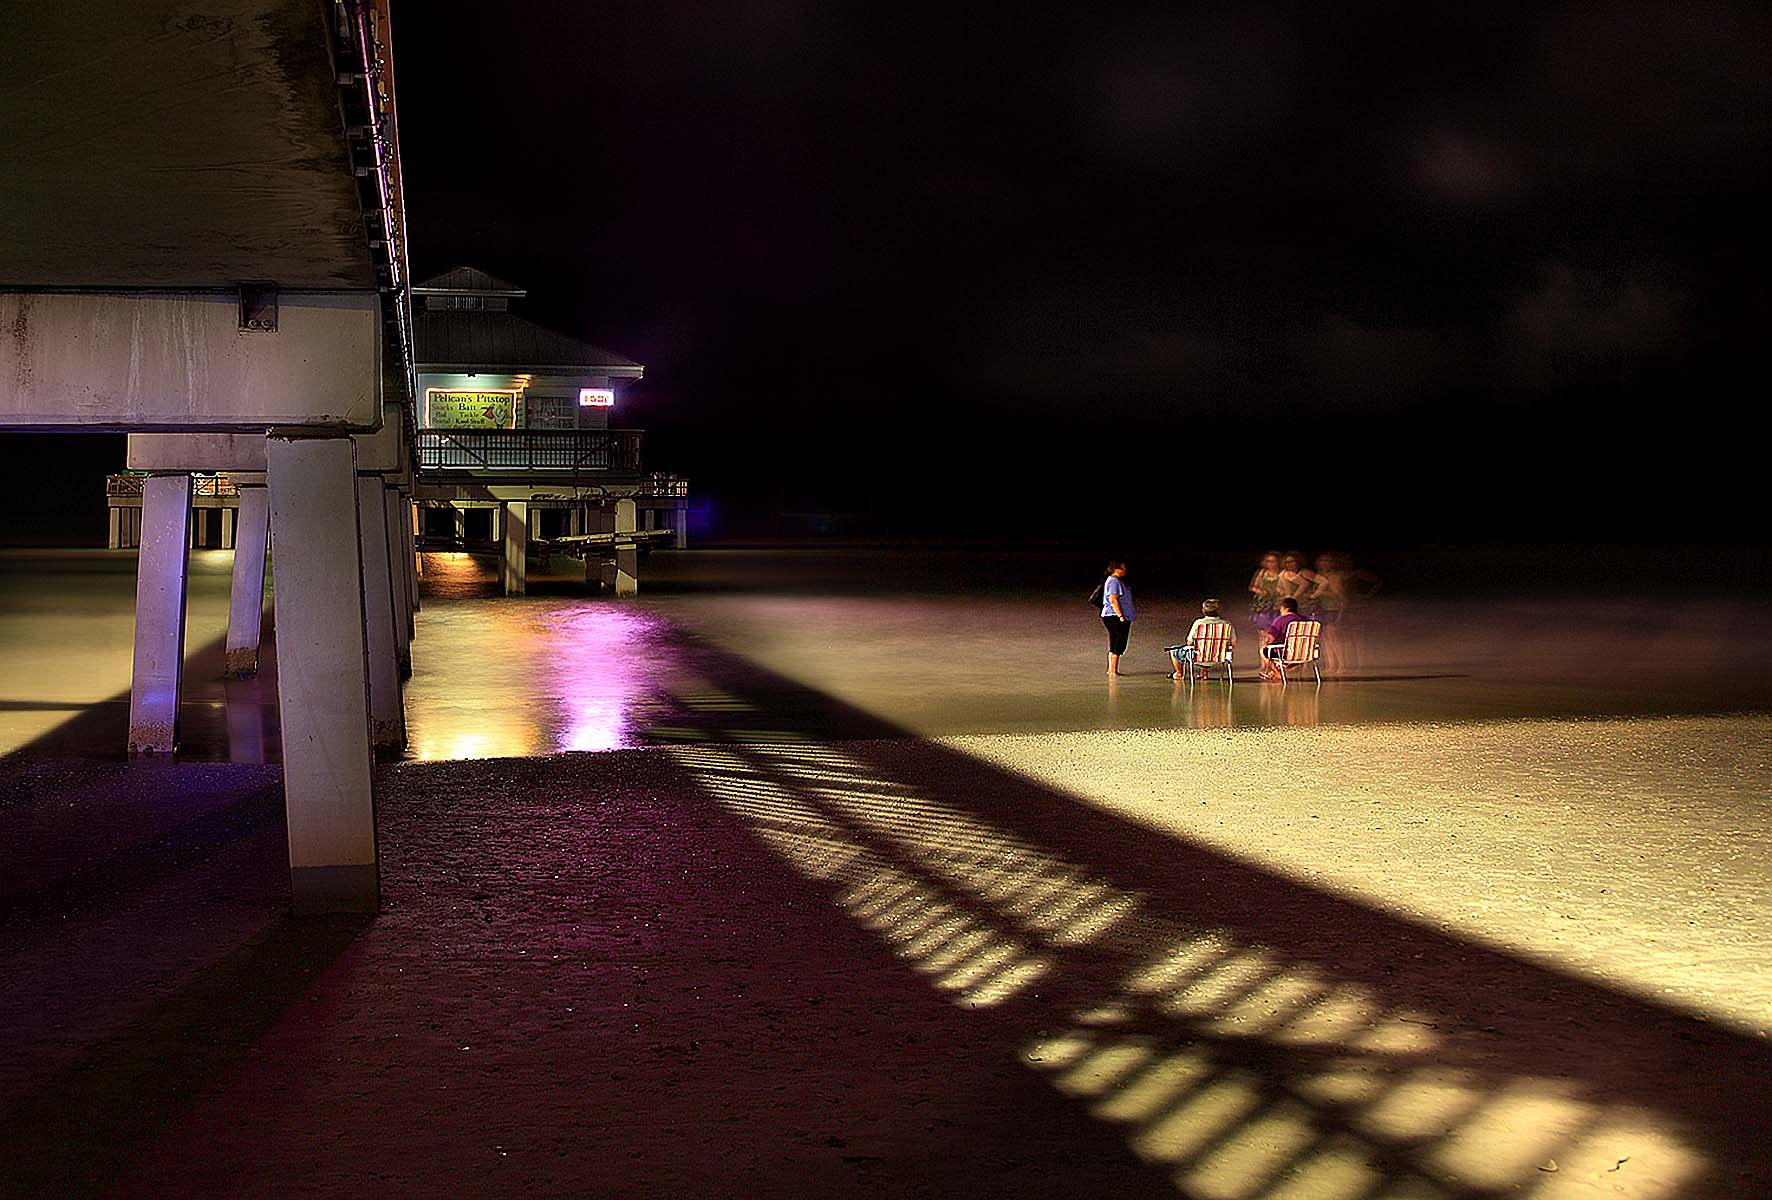 Conversation at the Pier